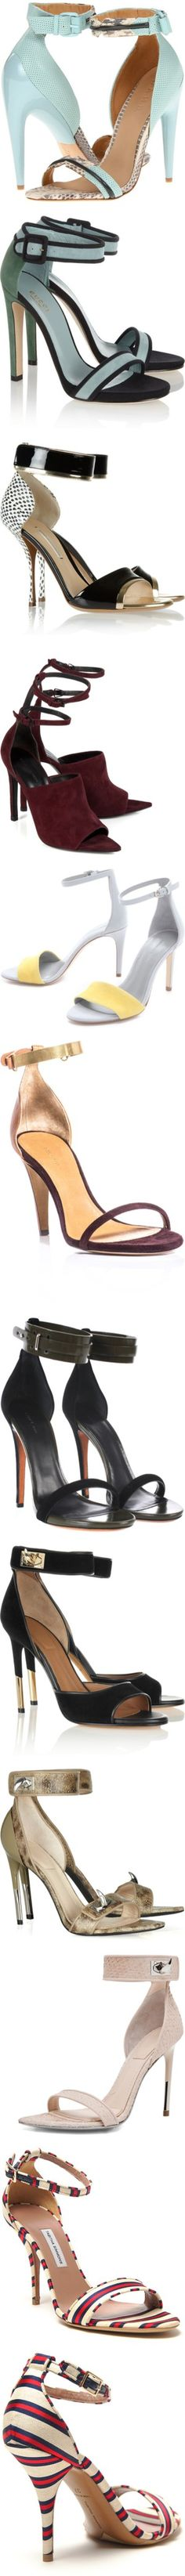 """""""Ankle strap sandals"""" by inmango ❤ liked on Polyvore"""